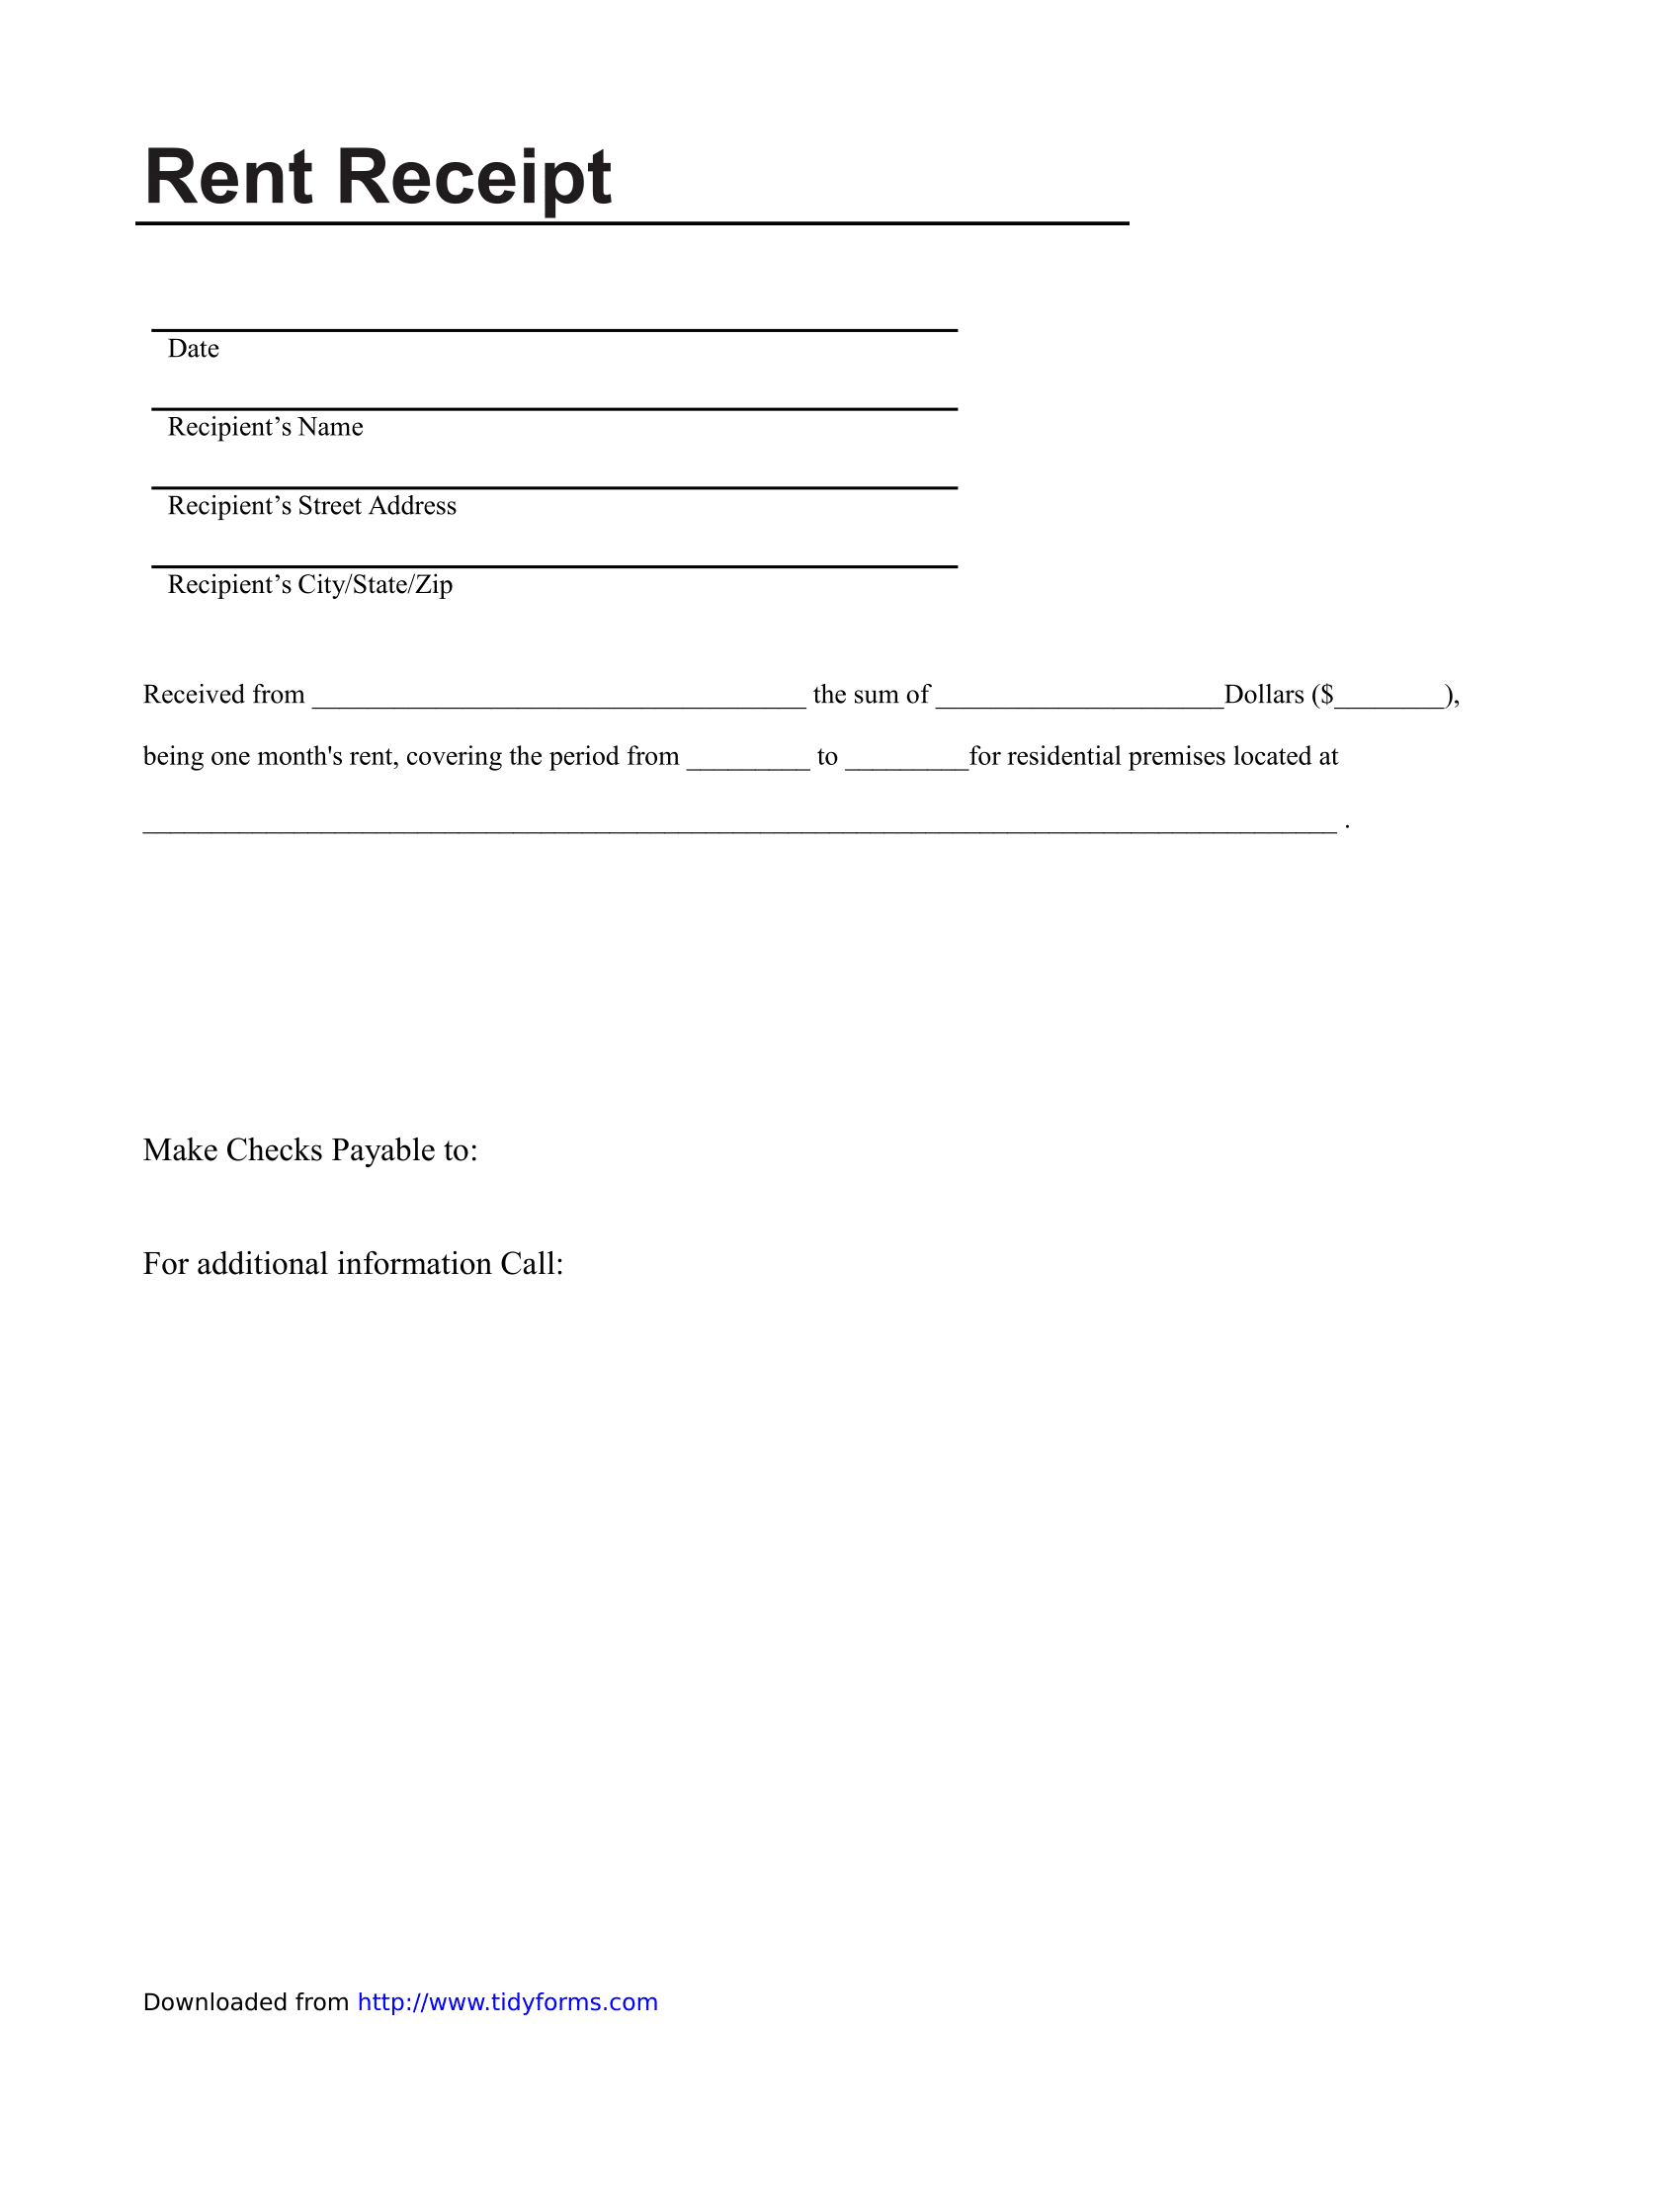 doc rent recipt rent receipt template pdf word rent receipt template sample rent recipt